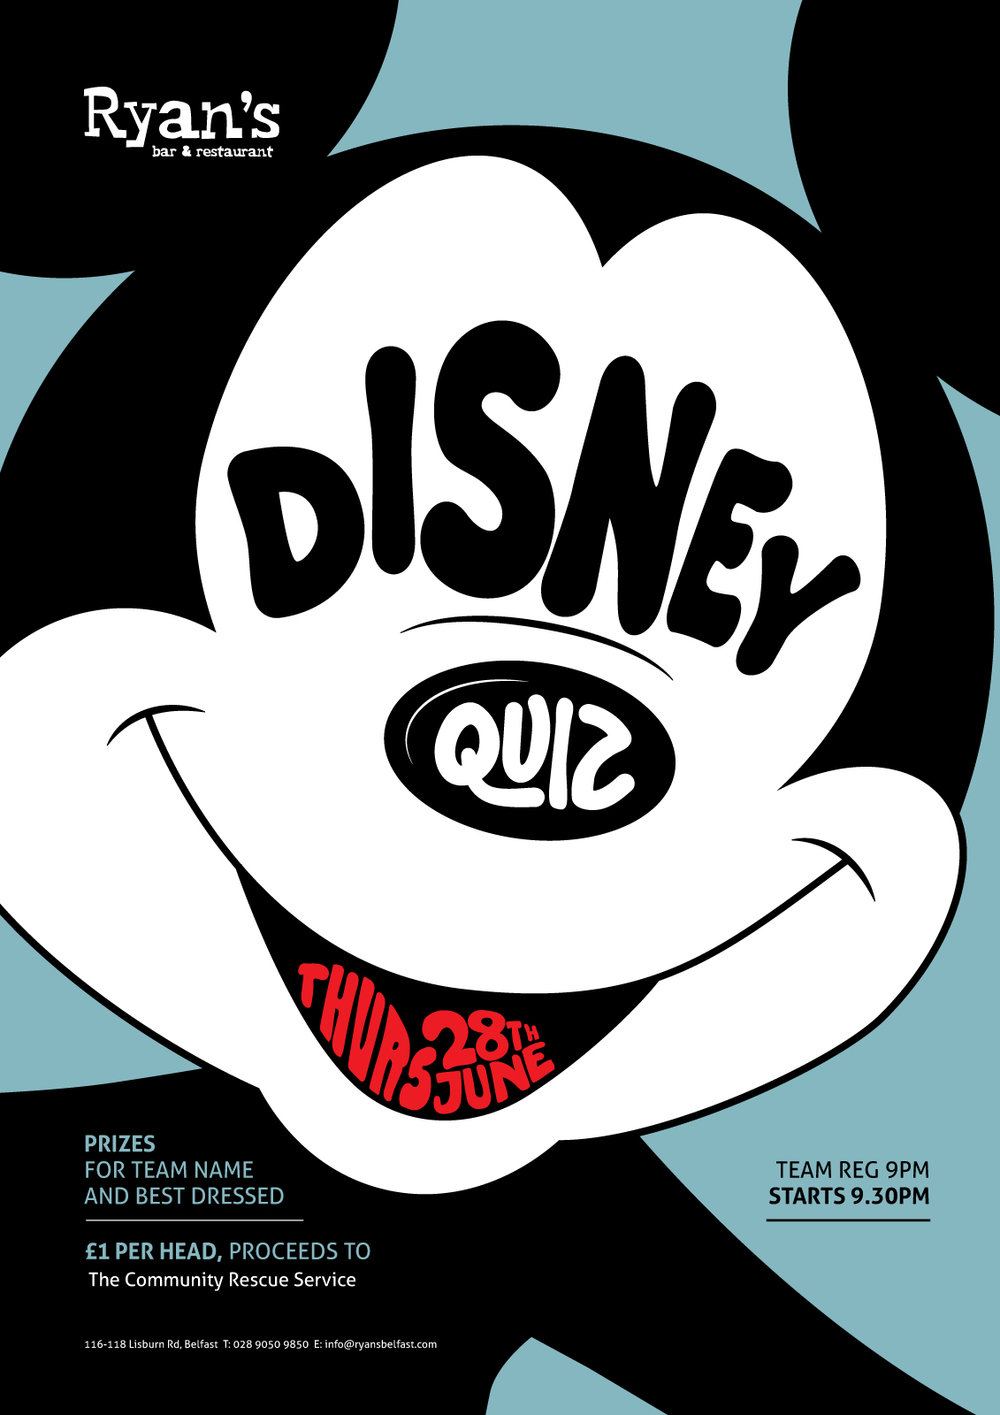 RYANS-Disney-Quiz-June-18.jpg